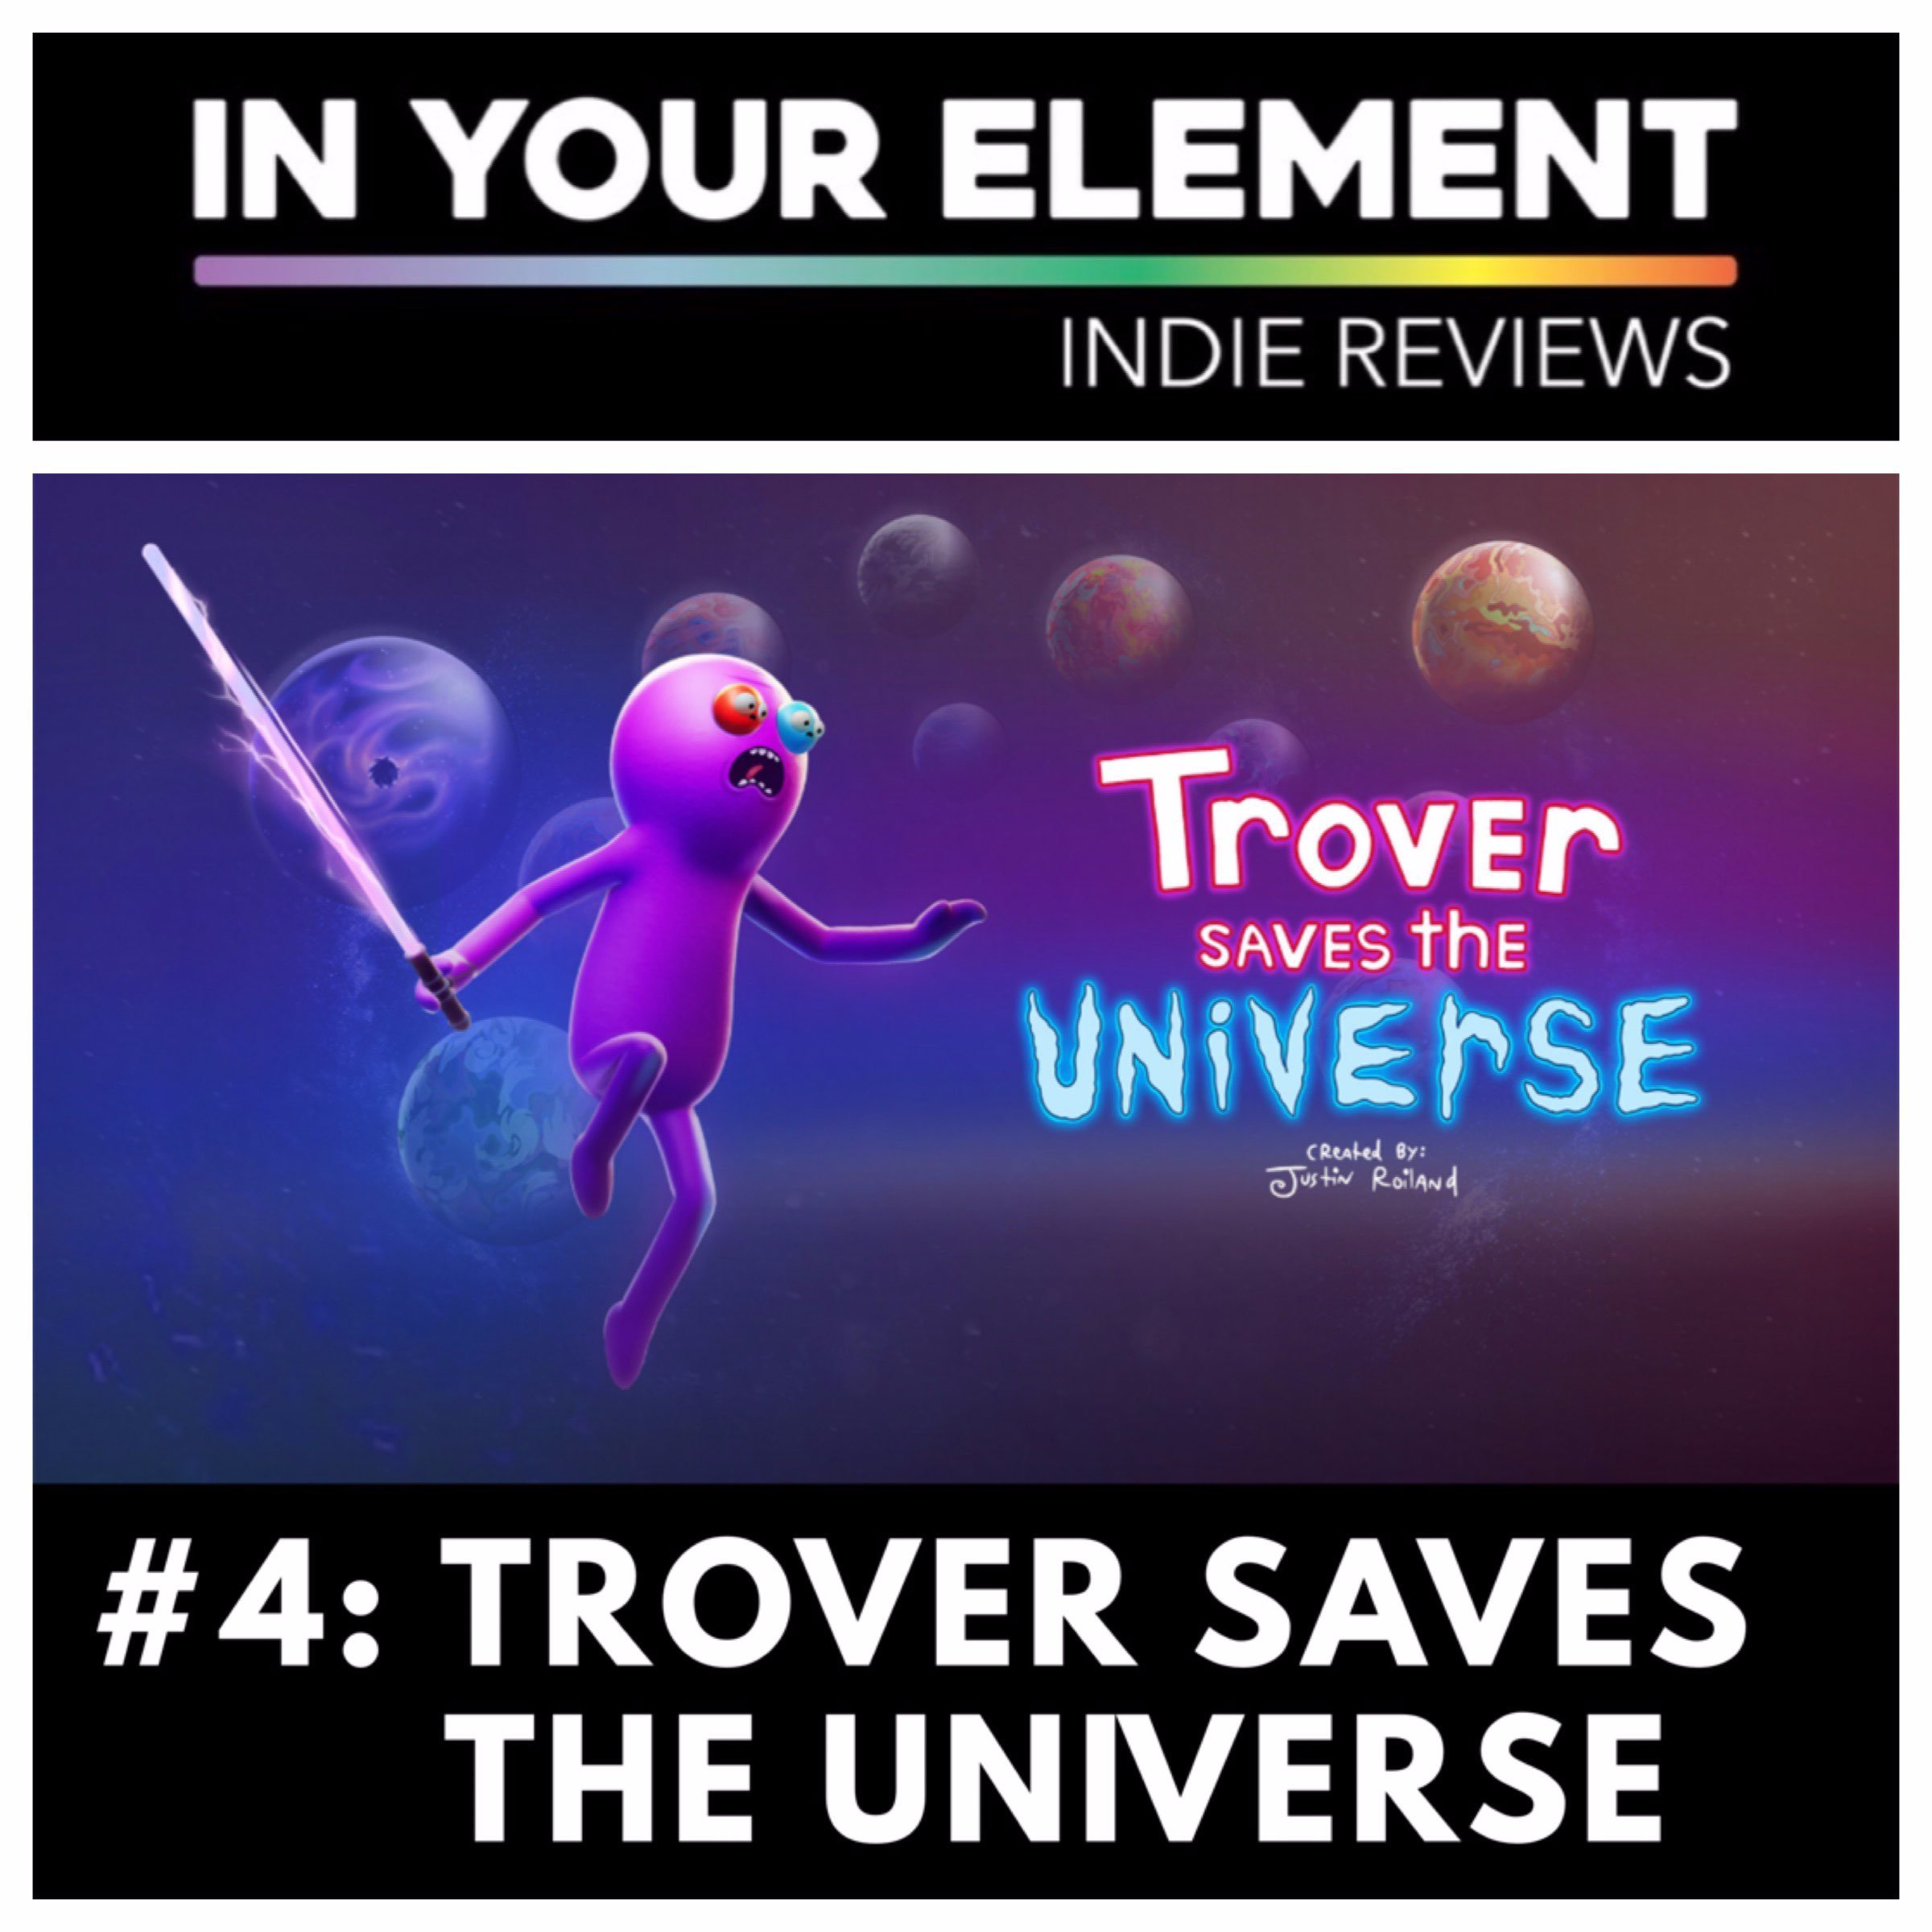 Indie Reviews #4: Trover Saves The Universe